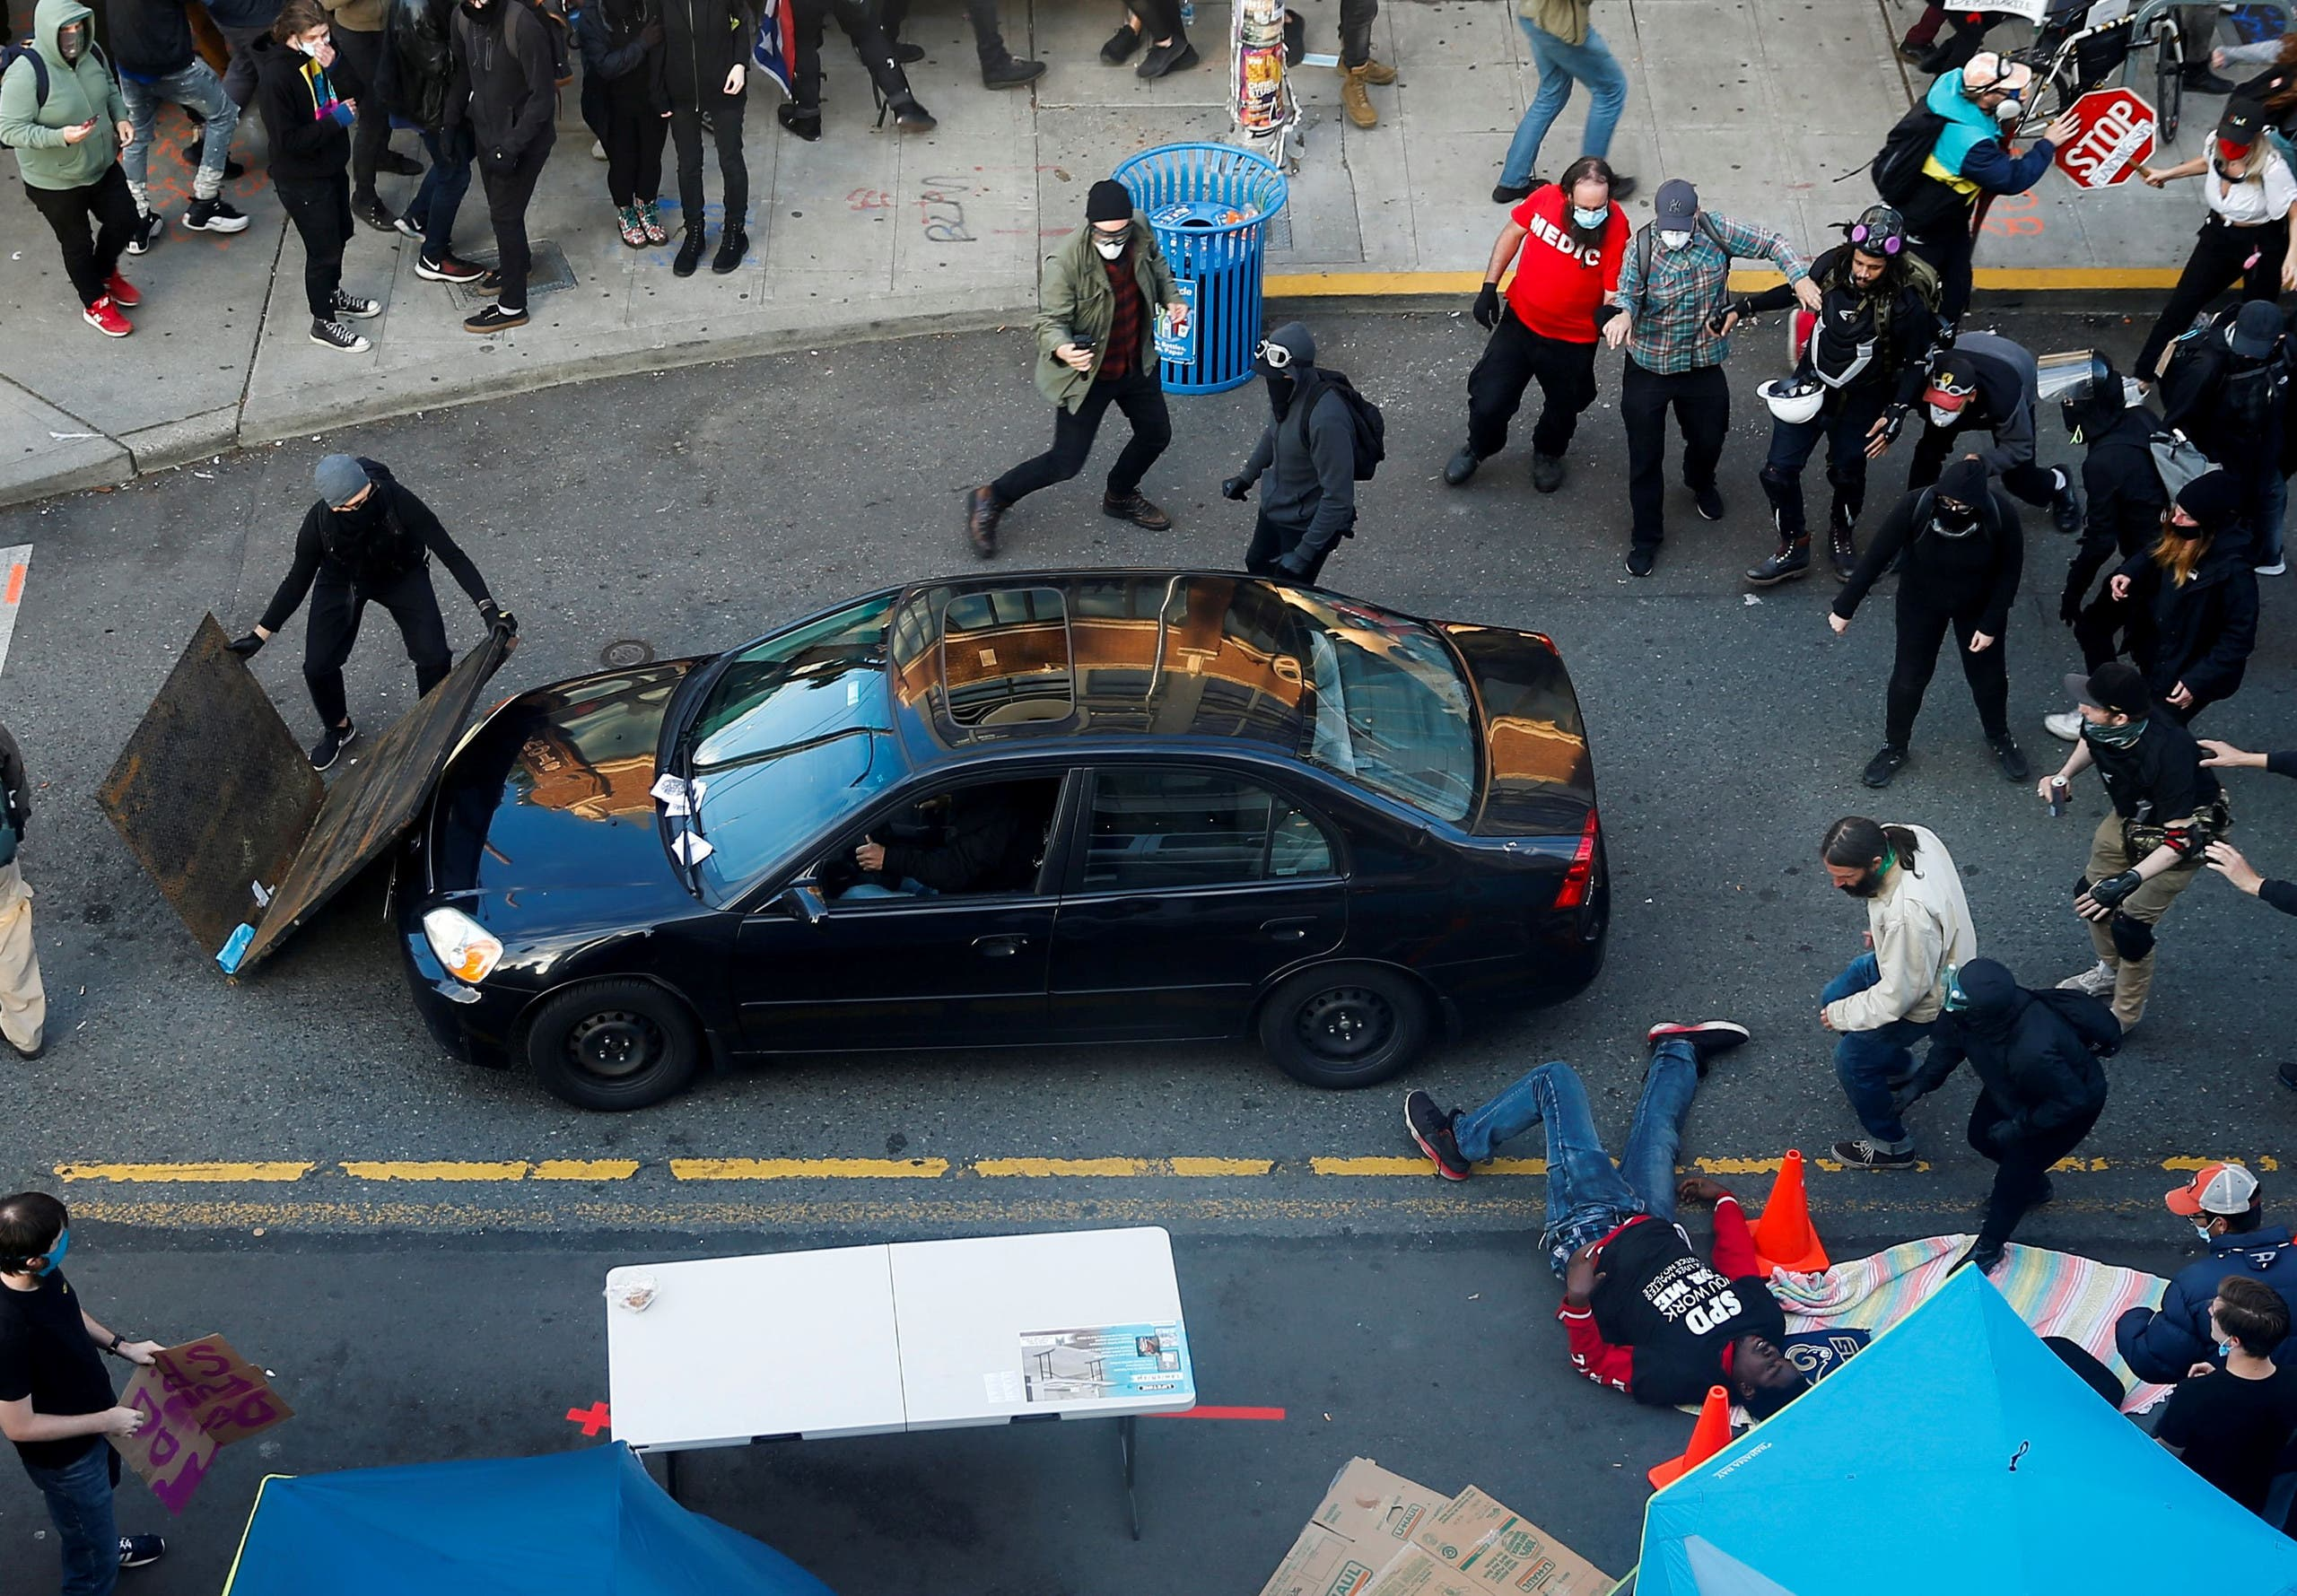 A man drives his car into a crowd of protesters in Seattle, US. (Reuters)